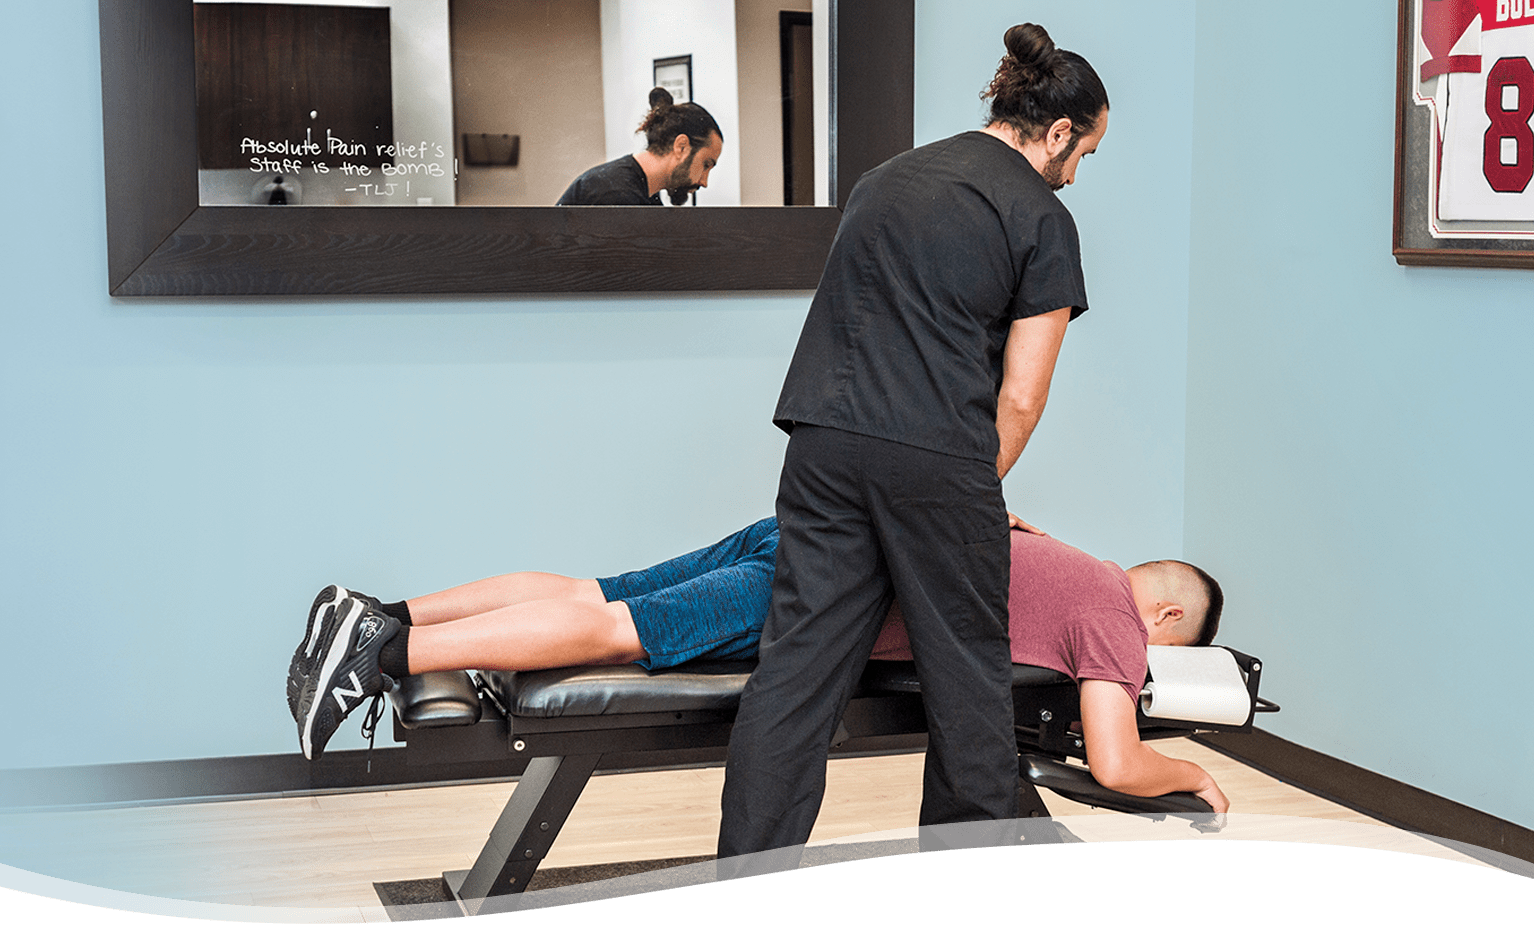 Absolute Pain Relief chiropractic care